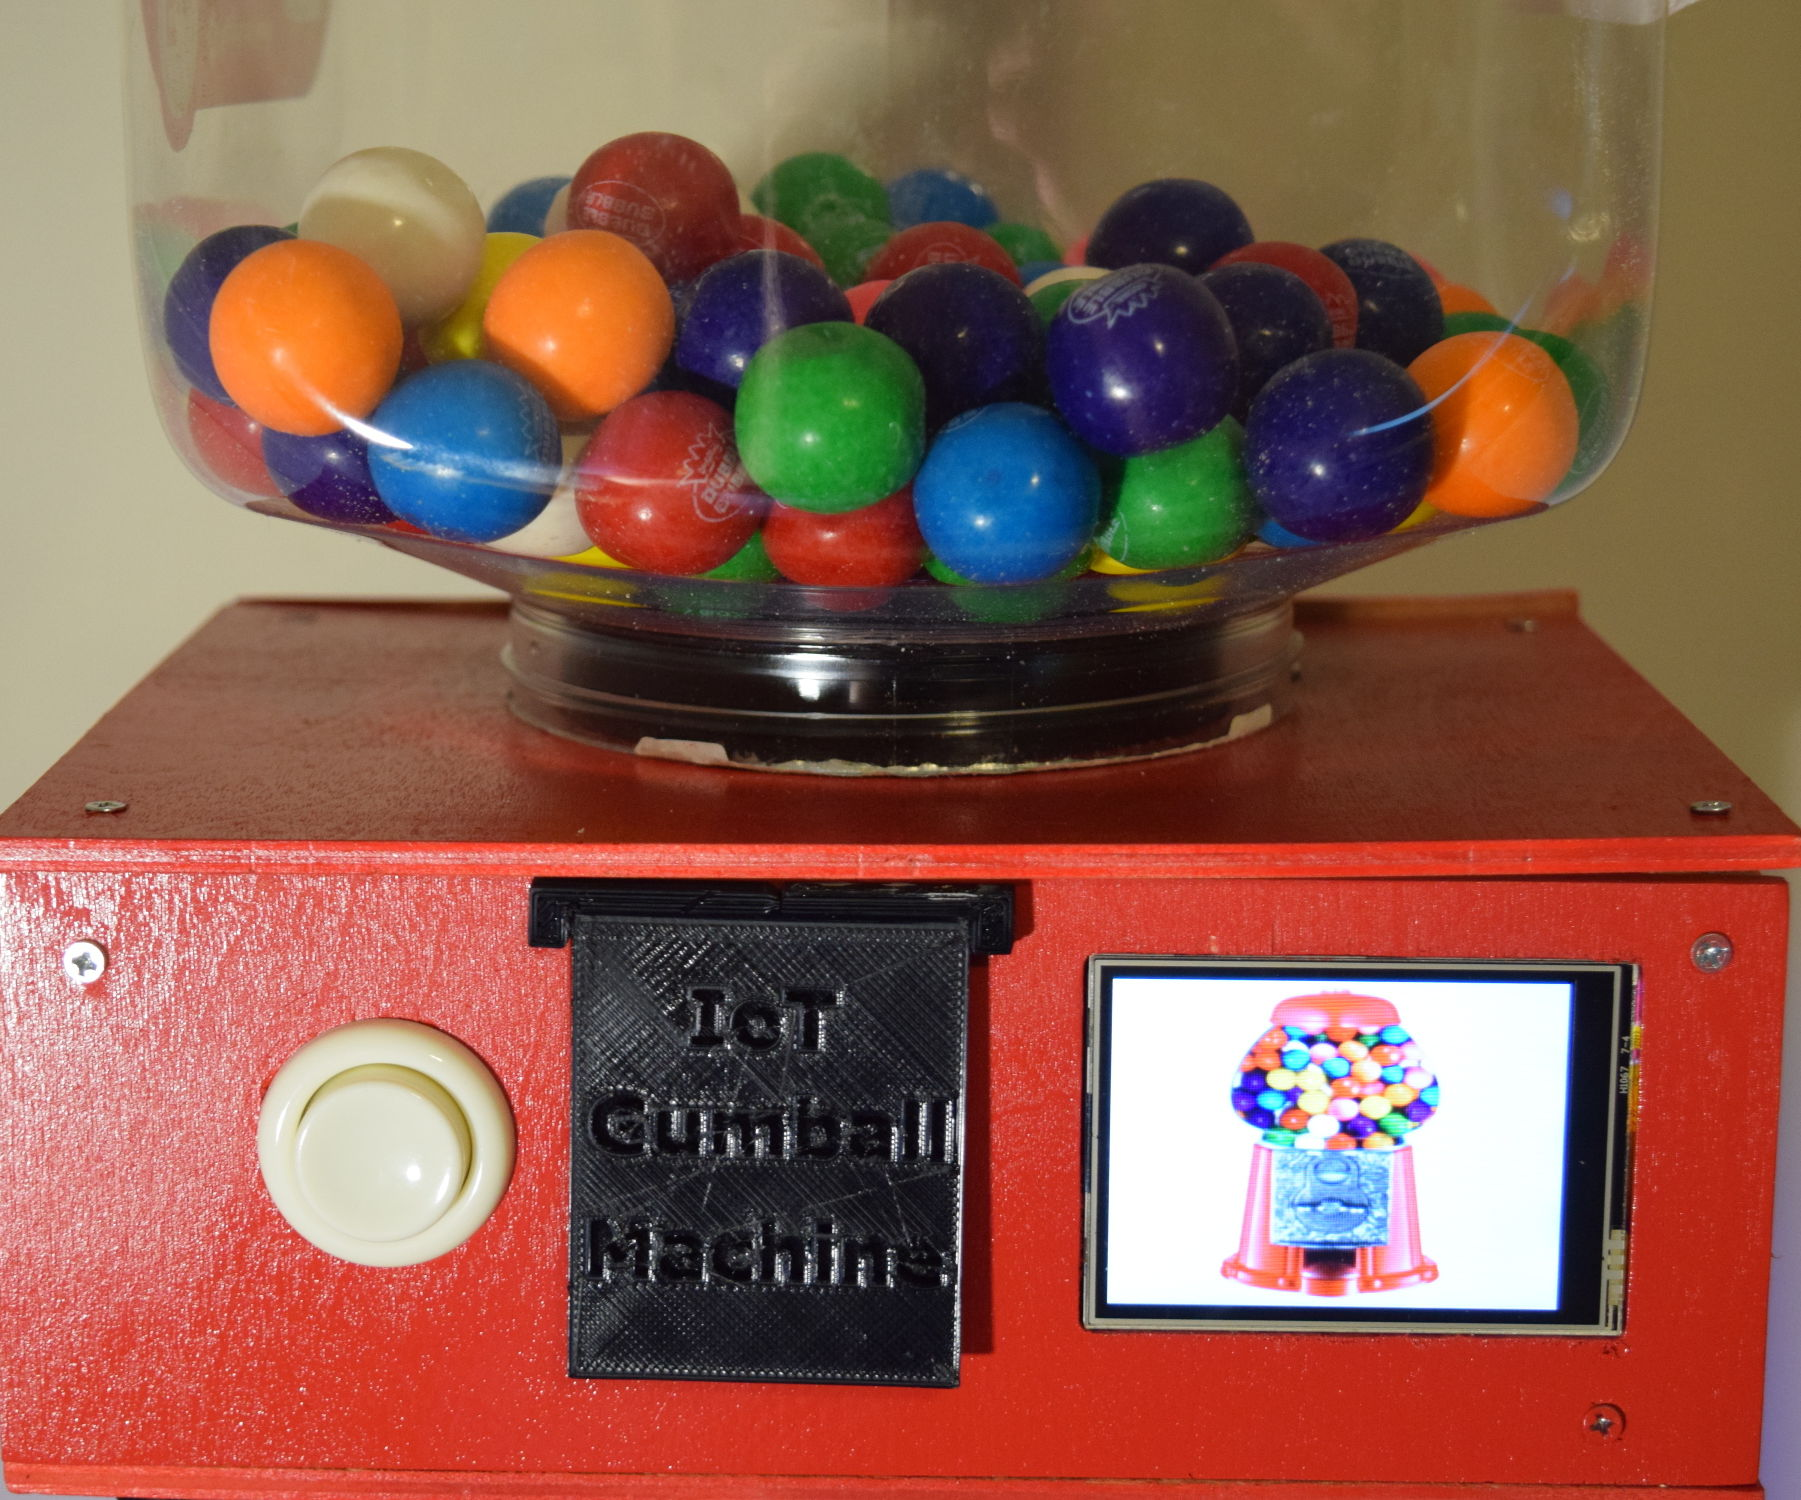 The ULTIMATE Gumball Machine